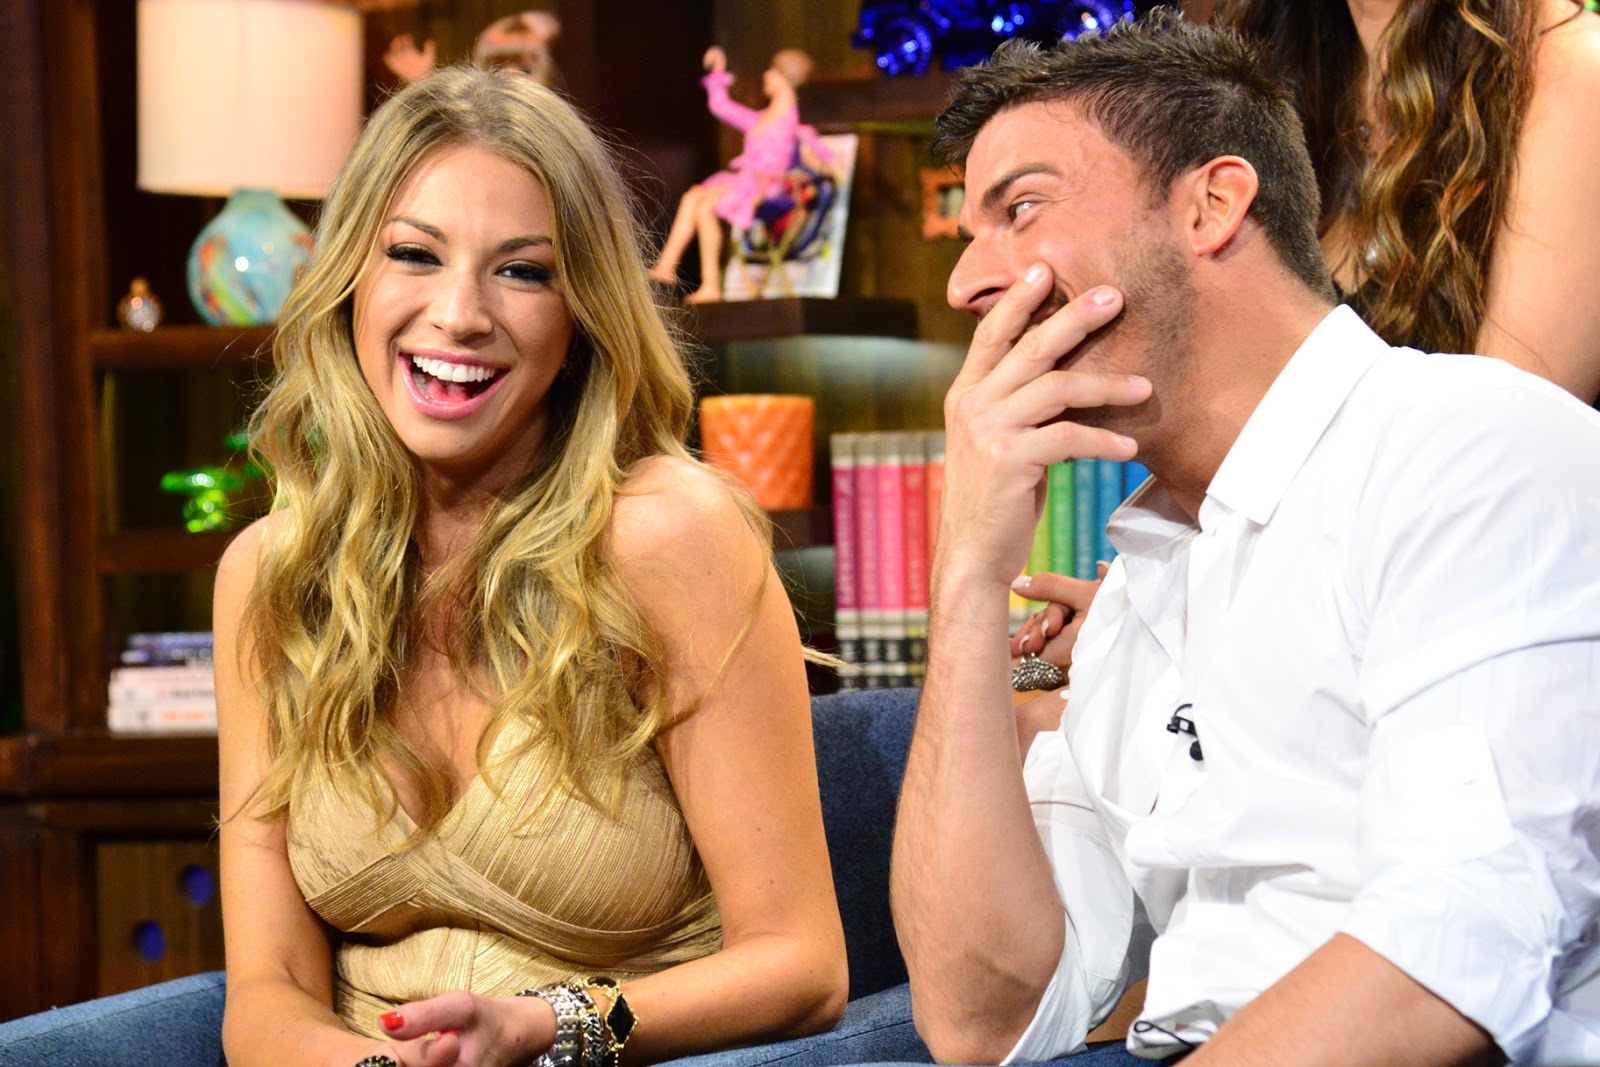 patrick meagher dating stassi Stassi schroeder's ex patrick meagher will appear on this season of vanderpump rules subscribe to people people now brings.